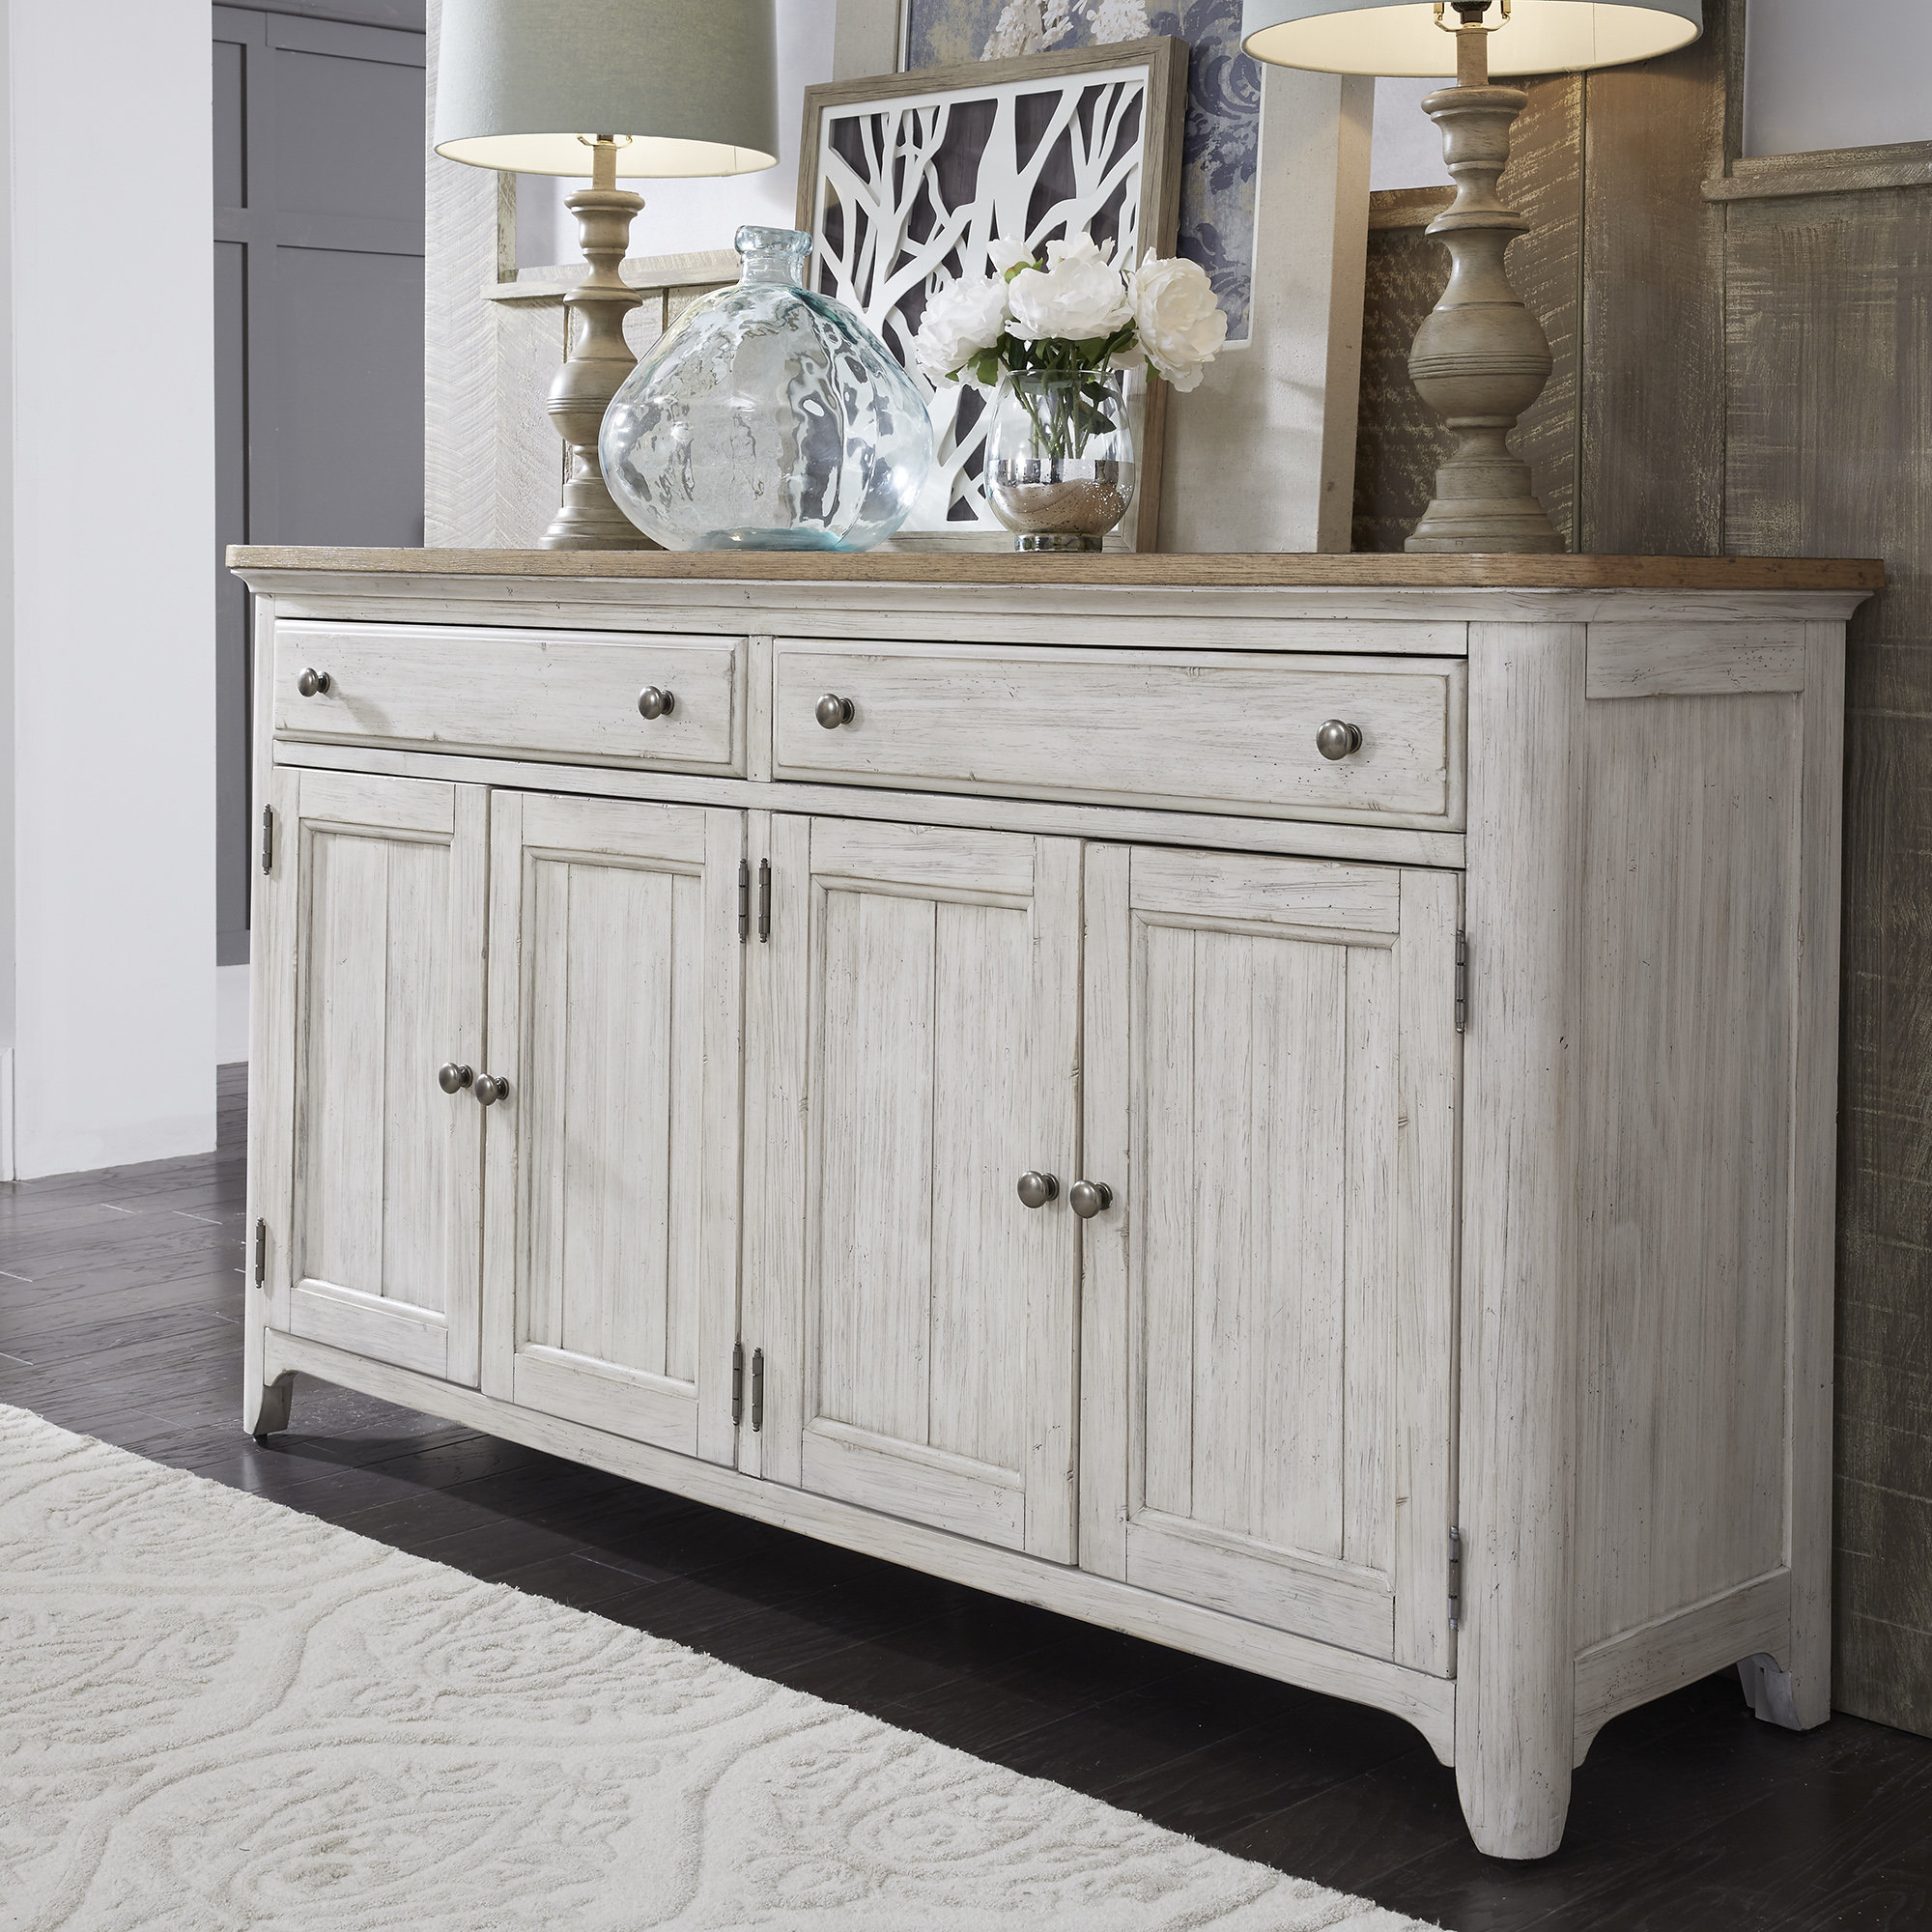 Popular Payton Serving Sideboards Inside Farmhouse & Rustic Silverware Storage Equipped Sideboards (Gallery 3 of 20)